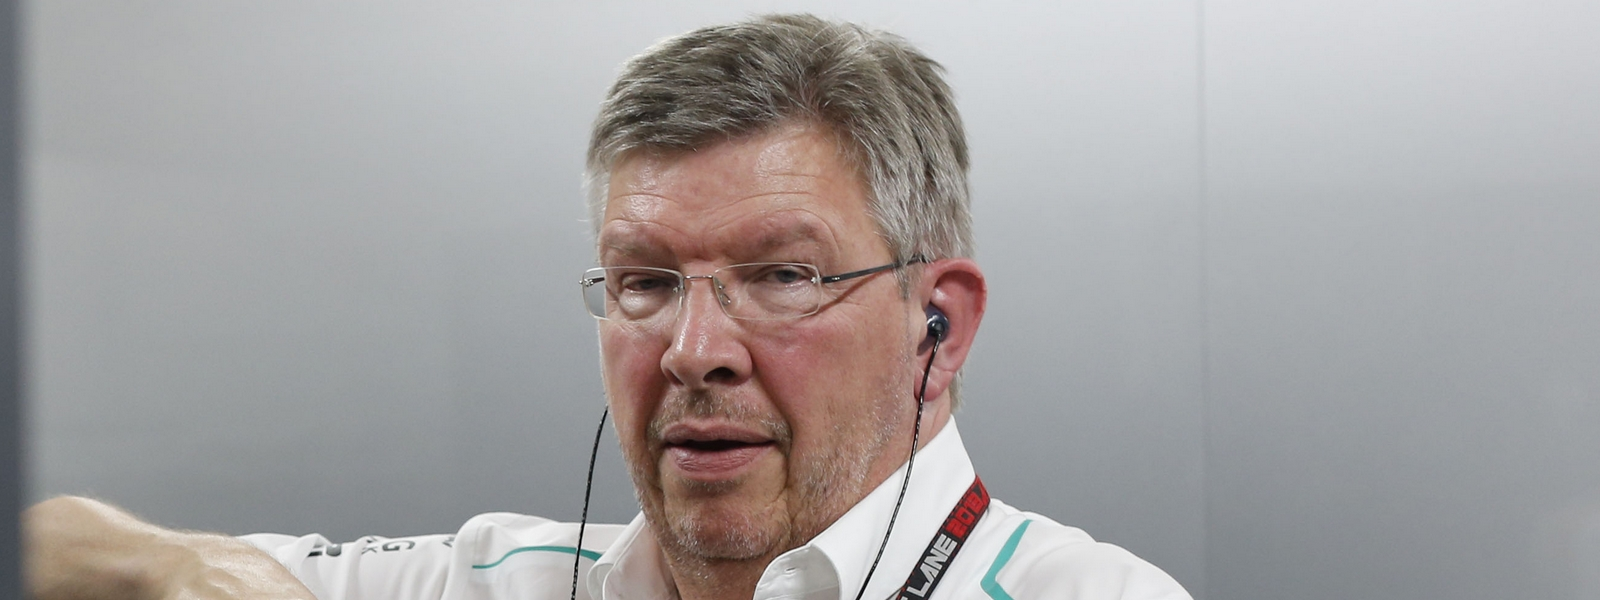 Motorsports: FIA Formula One World Championship 2013, Grand Prix of India,  Ross Brawn (GBR, Mercedes AMG Petronas F1 Team),  *** Local Caption *** +++ www.hoch-zwei.net +++ copyright: HOCH ZWEI +++